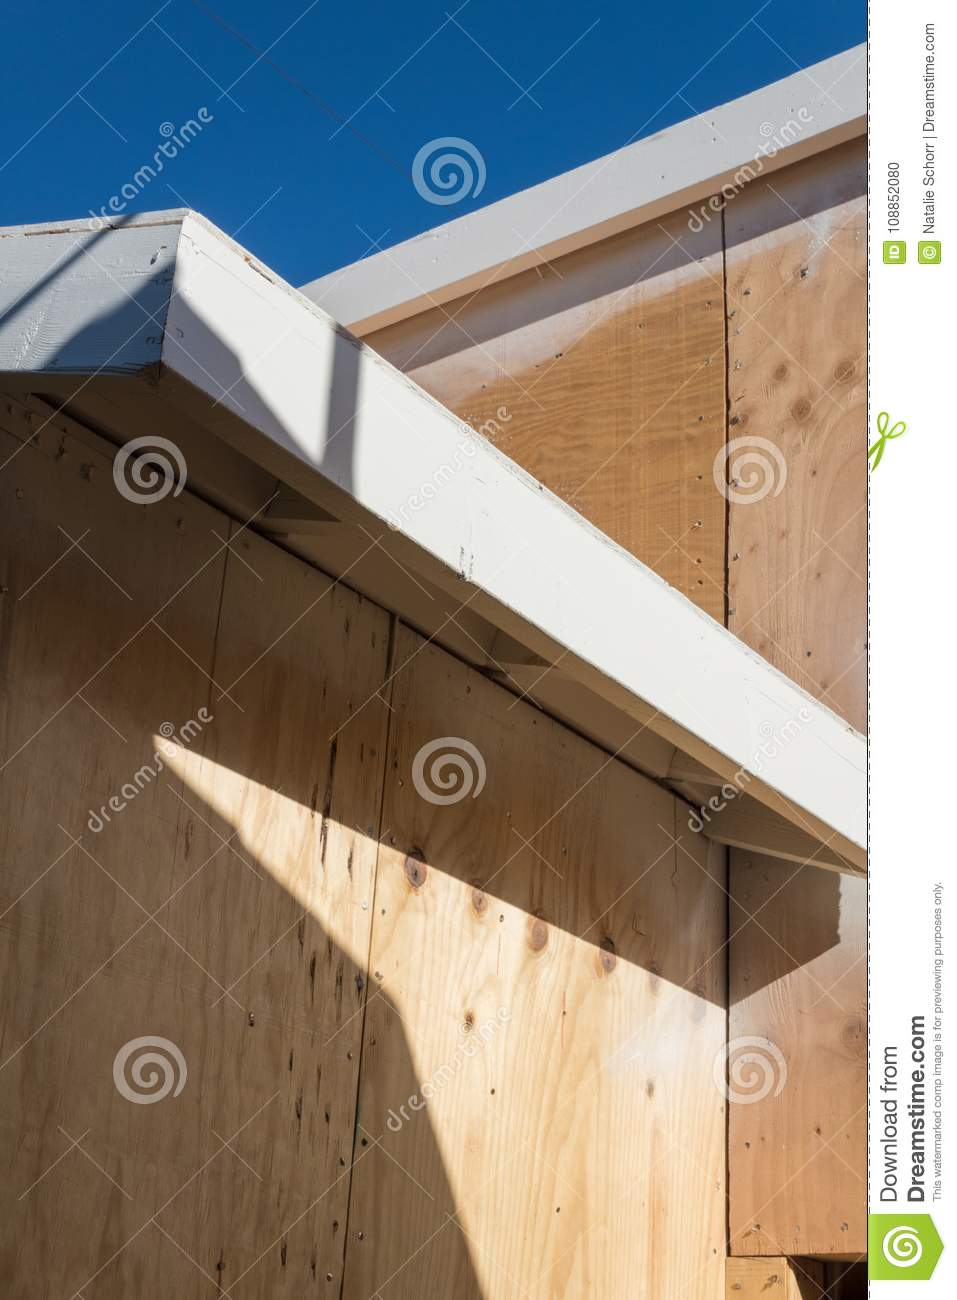 Fascia Board Detail Of Renovation Or New Construction Building Exterior With